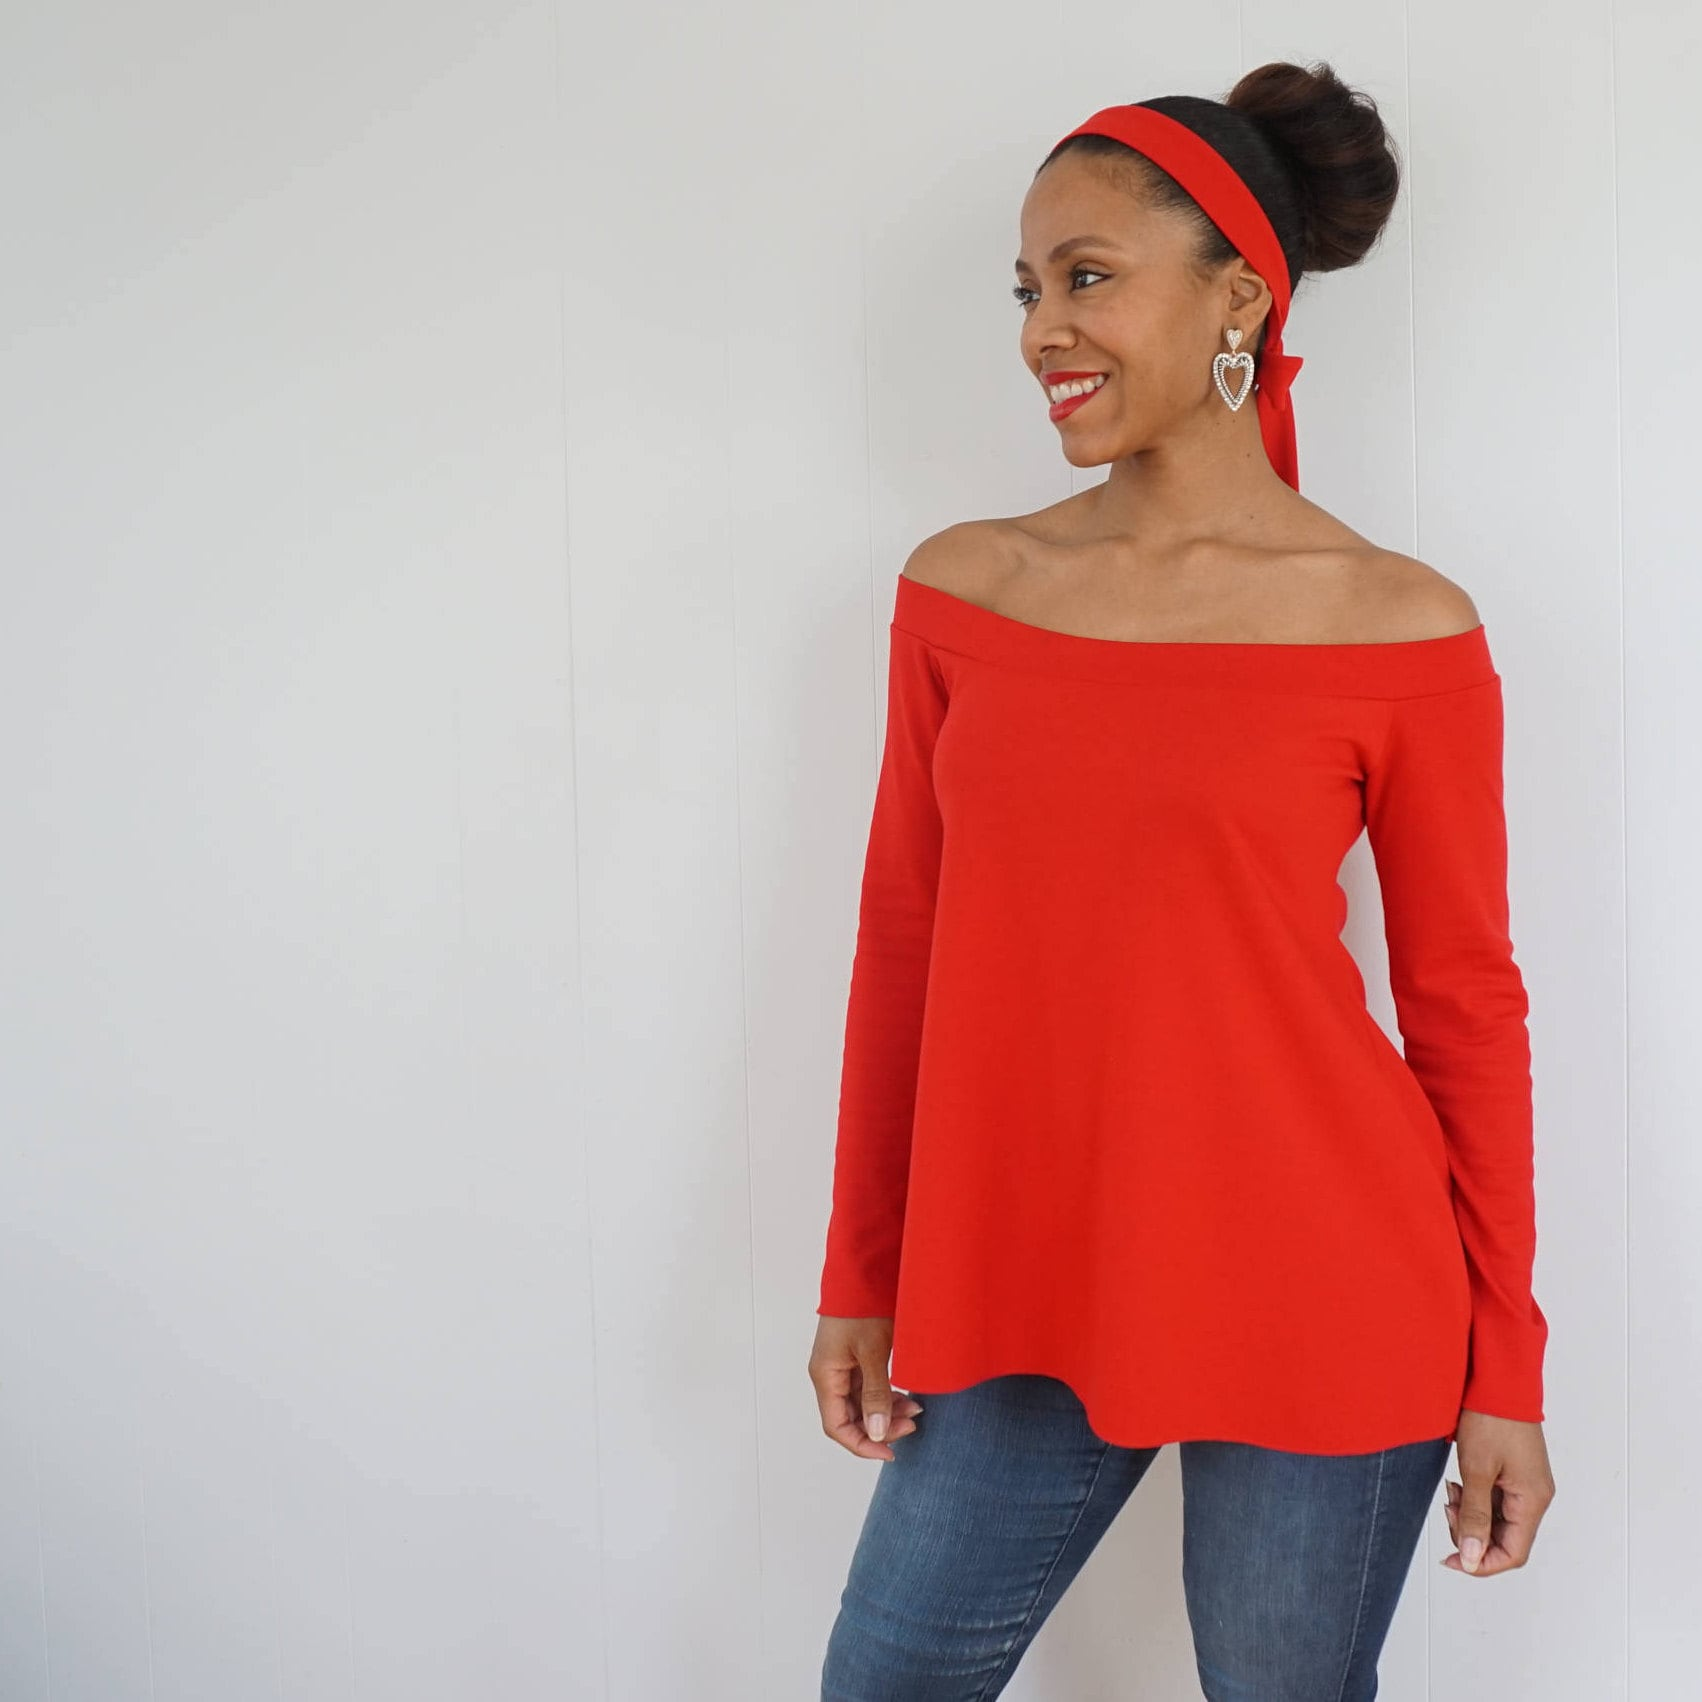 b430df85ee6 Red Off the Shoulder Top Long Sleeve Maternity Shirt Red | Etsy